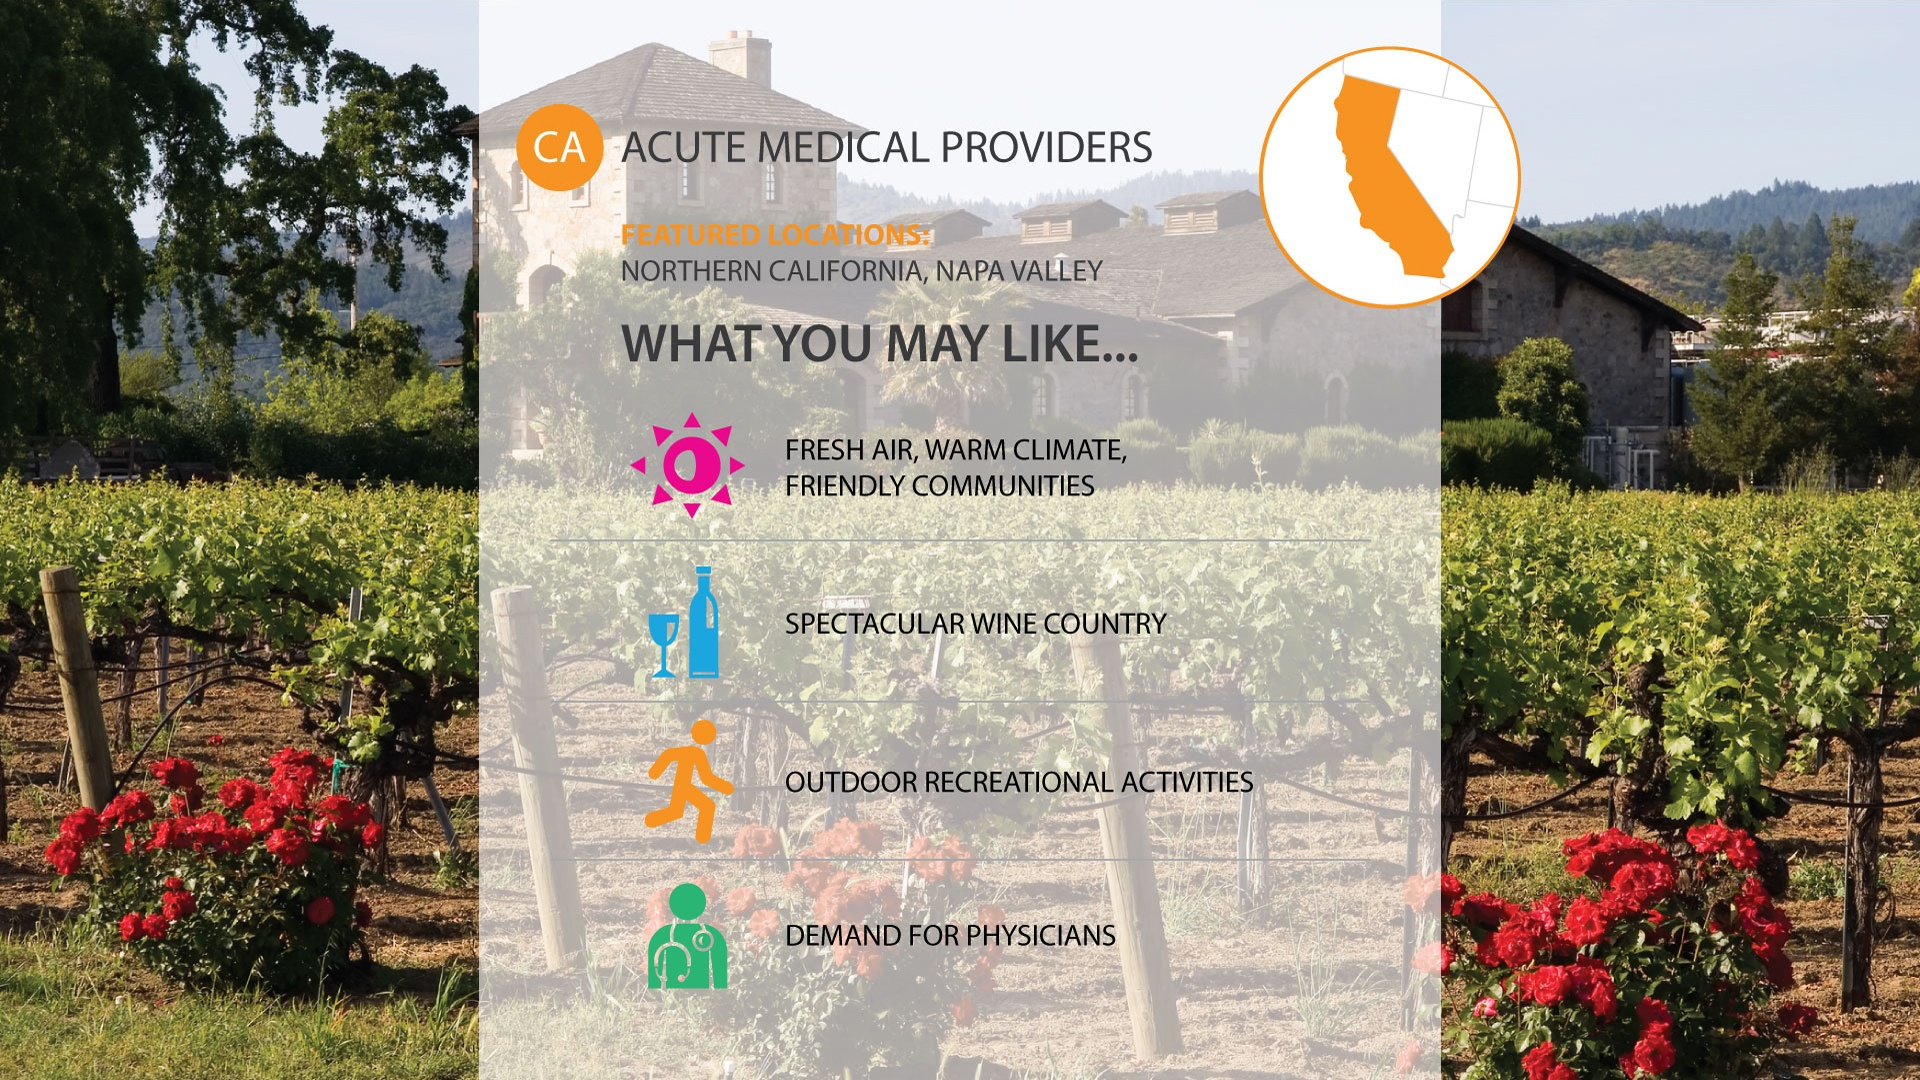 Acute Medical Providers emergency physician job in california